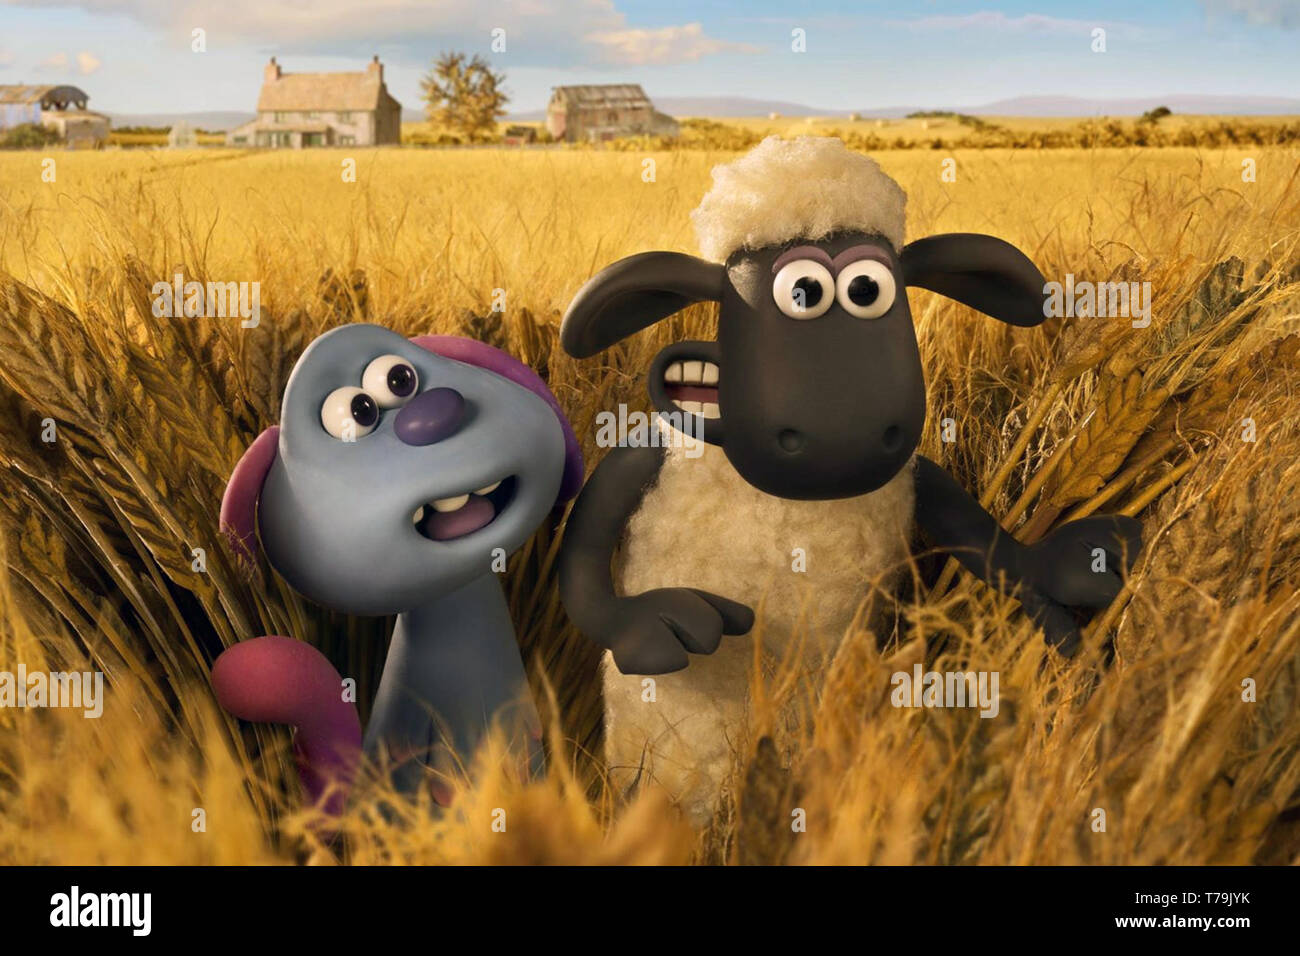 A Shaun the Sheep Movie: Farmageddon (or Shaun the Sheep Movie 2) is an upcoming 2019 British stop-motion animated sci-fi comedy film produced by Aardman Animations.    This photograph is supplied for editorial use only and is the copyright of the film company and/or the designated photographer assigned by the film or production company. - Stock Image